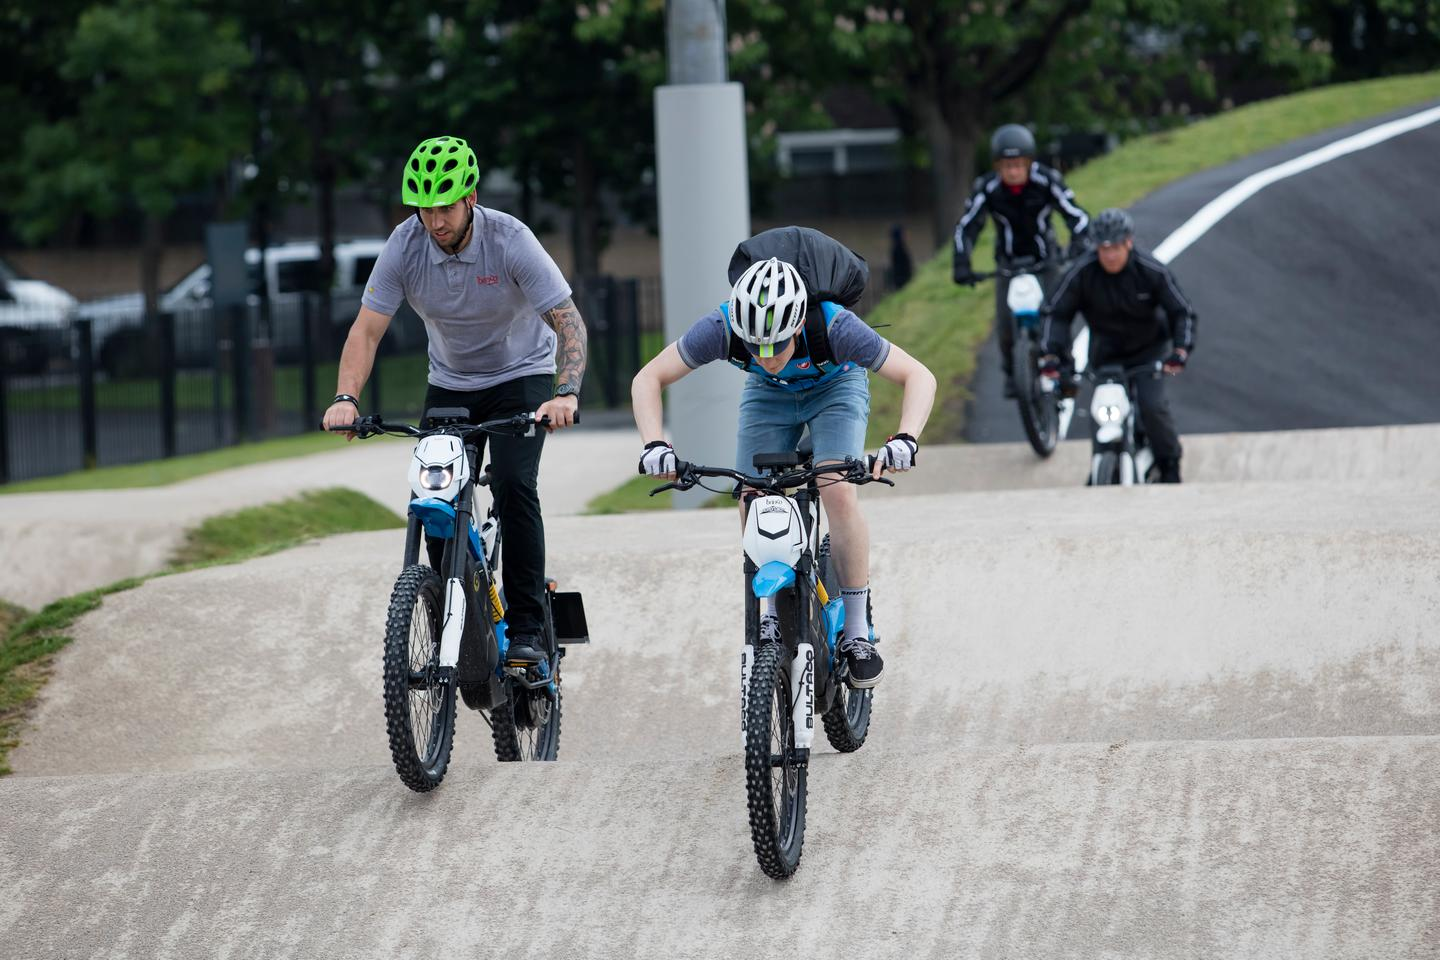 Brinco gang attacks BMX track